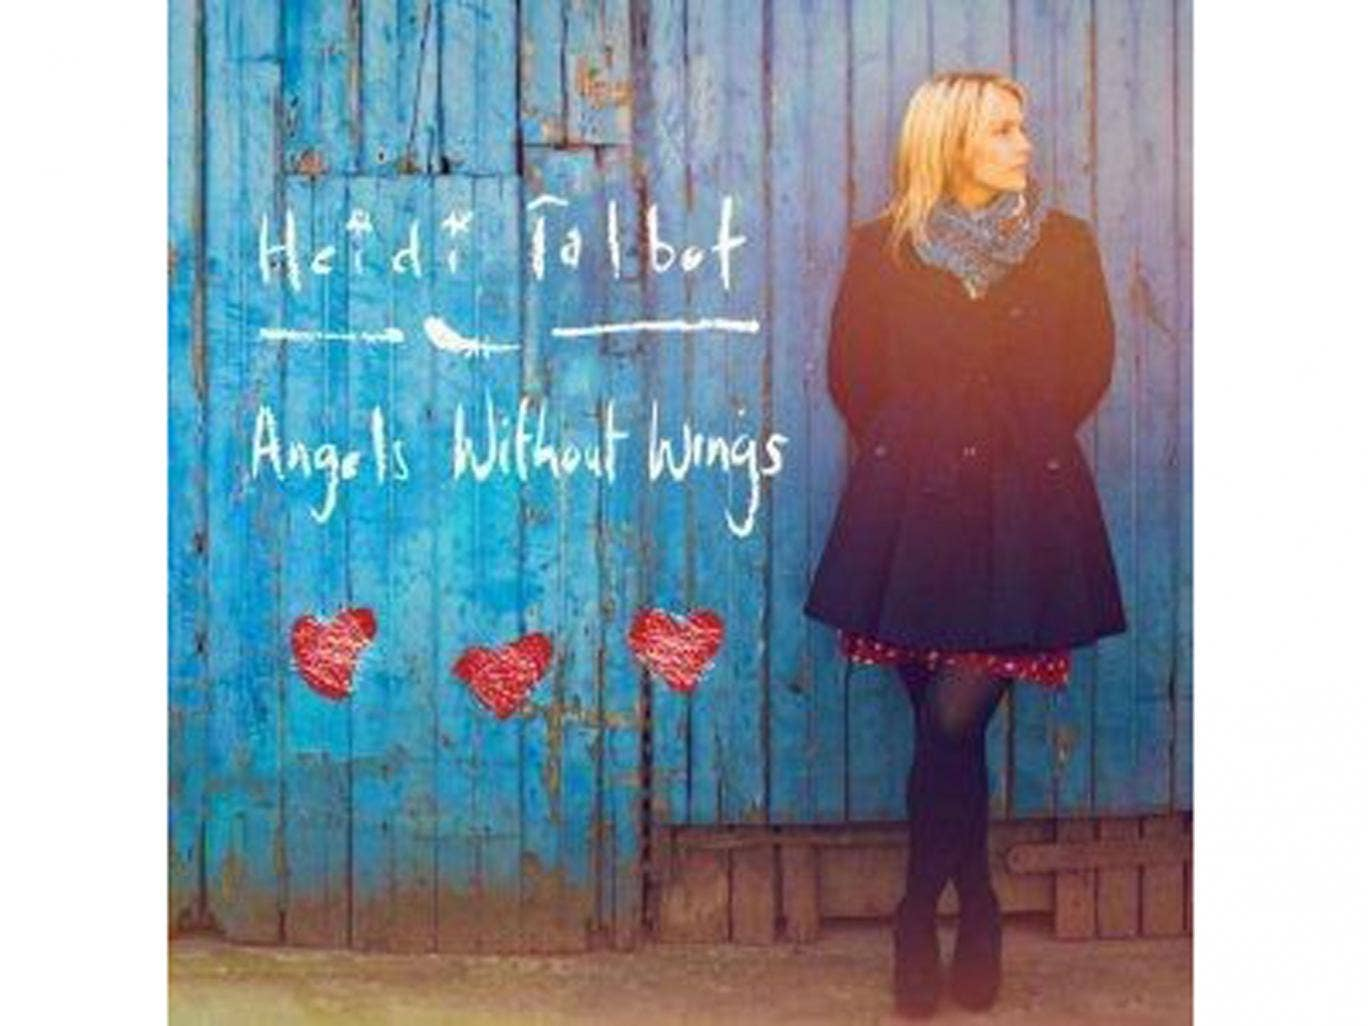 Heidi Talbot, Angels without Wings (Navigator)